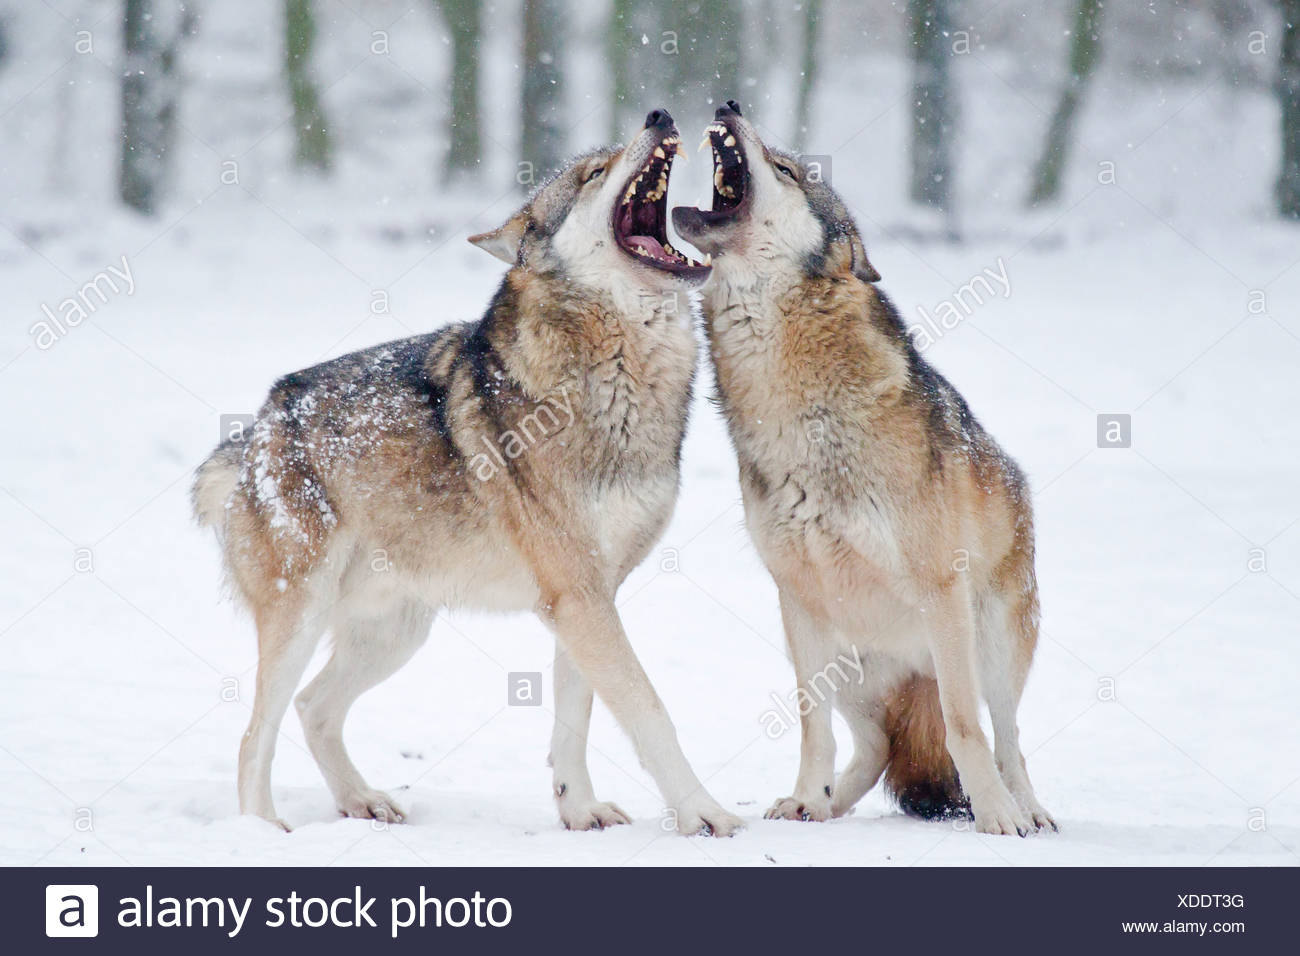 Two howling wolves (Canis lupus) in the snow - Stock Image